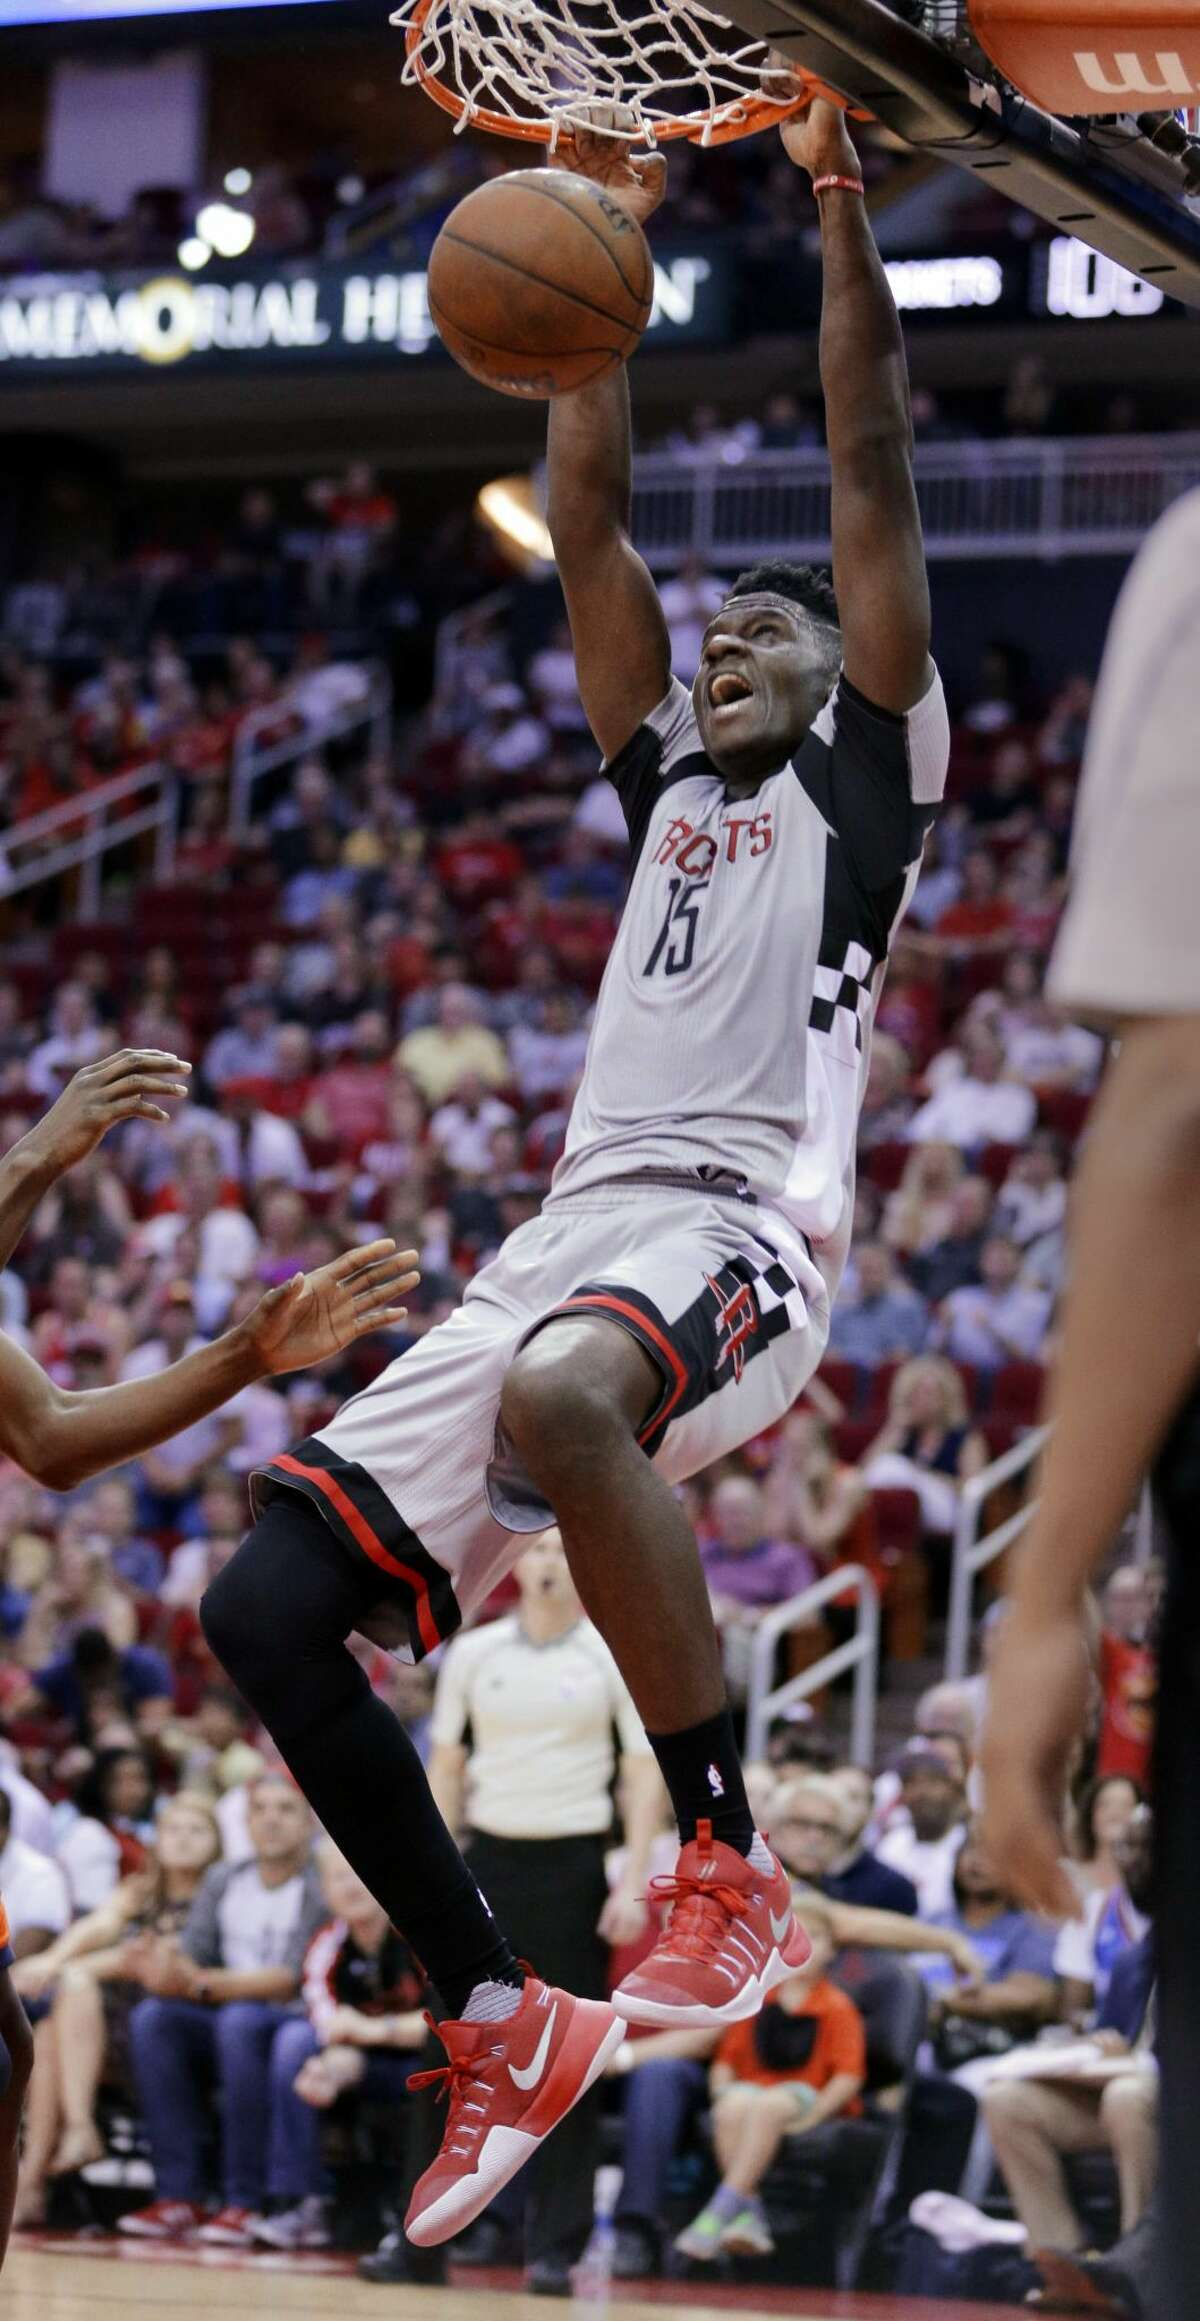 Houston Rockets' Clint Capela (15) hangs from the rim after a dunk against the Oklahoma City Thunder during the second half of an NBA basketball game in Houston, Sunday, March 26, 2017. Capela received a technical foul. (AP Photo/Michael Wyke)